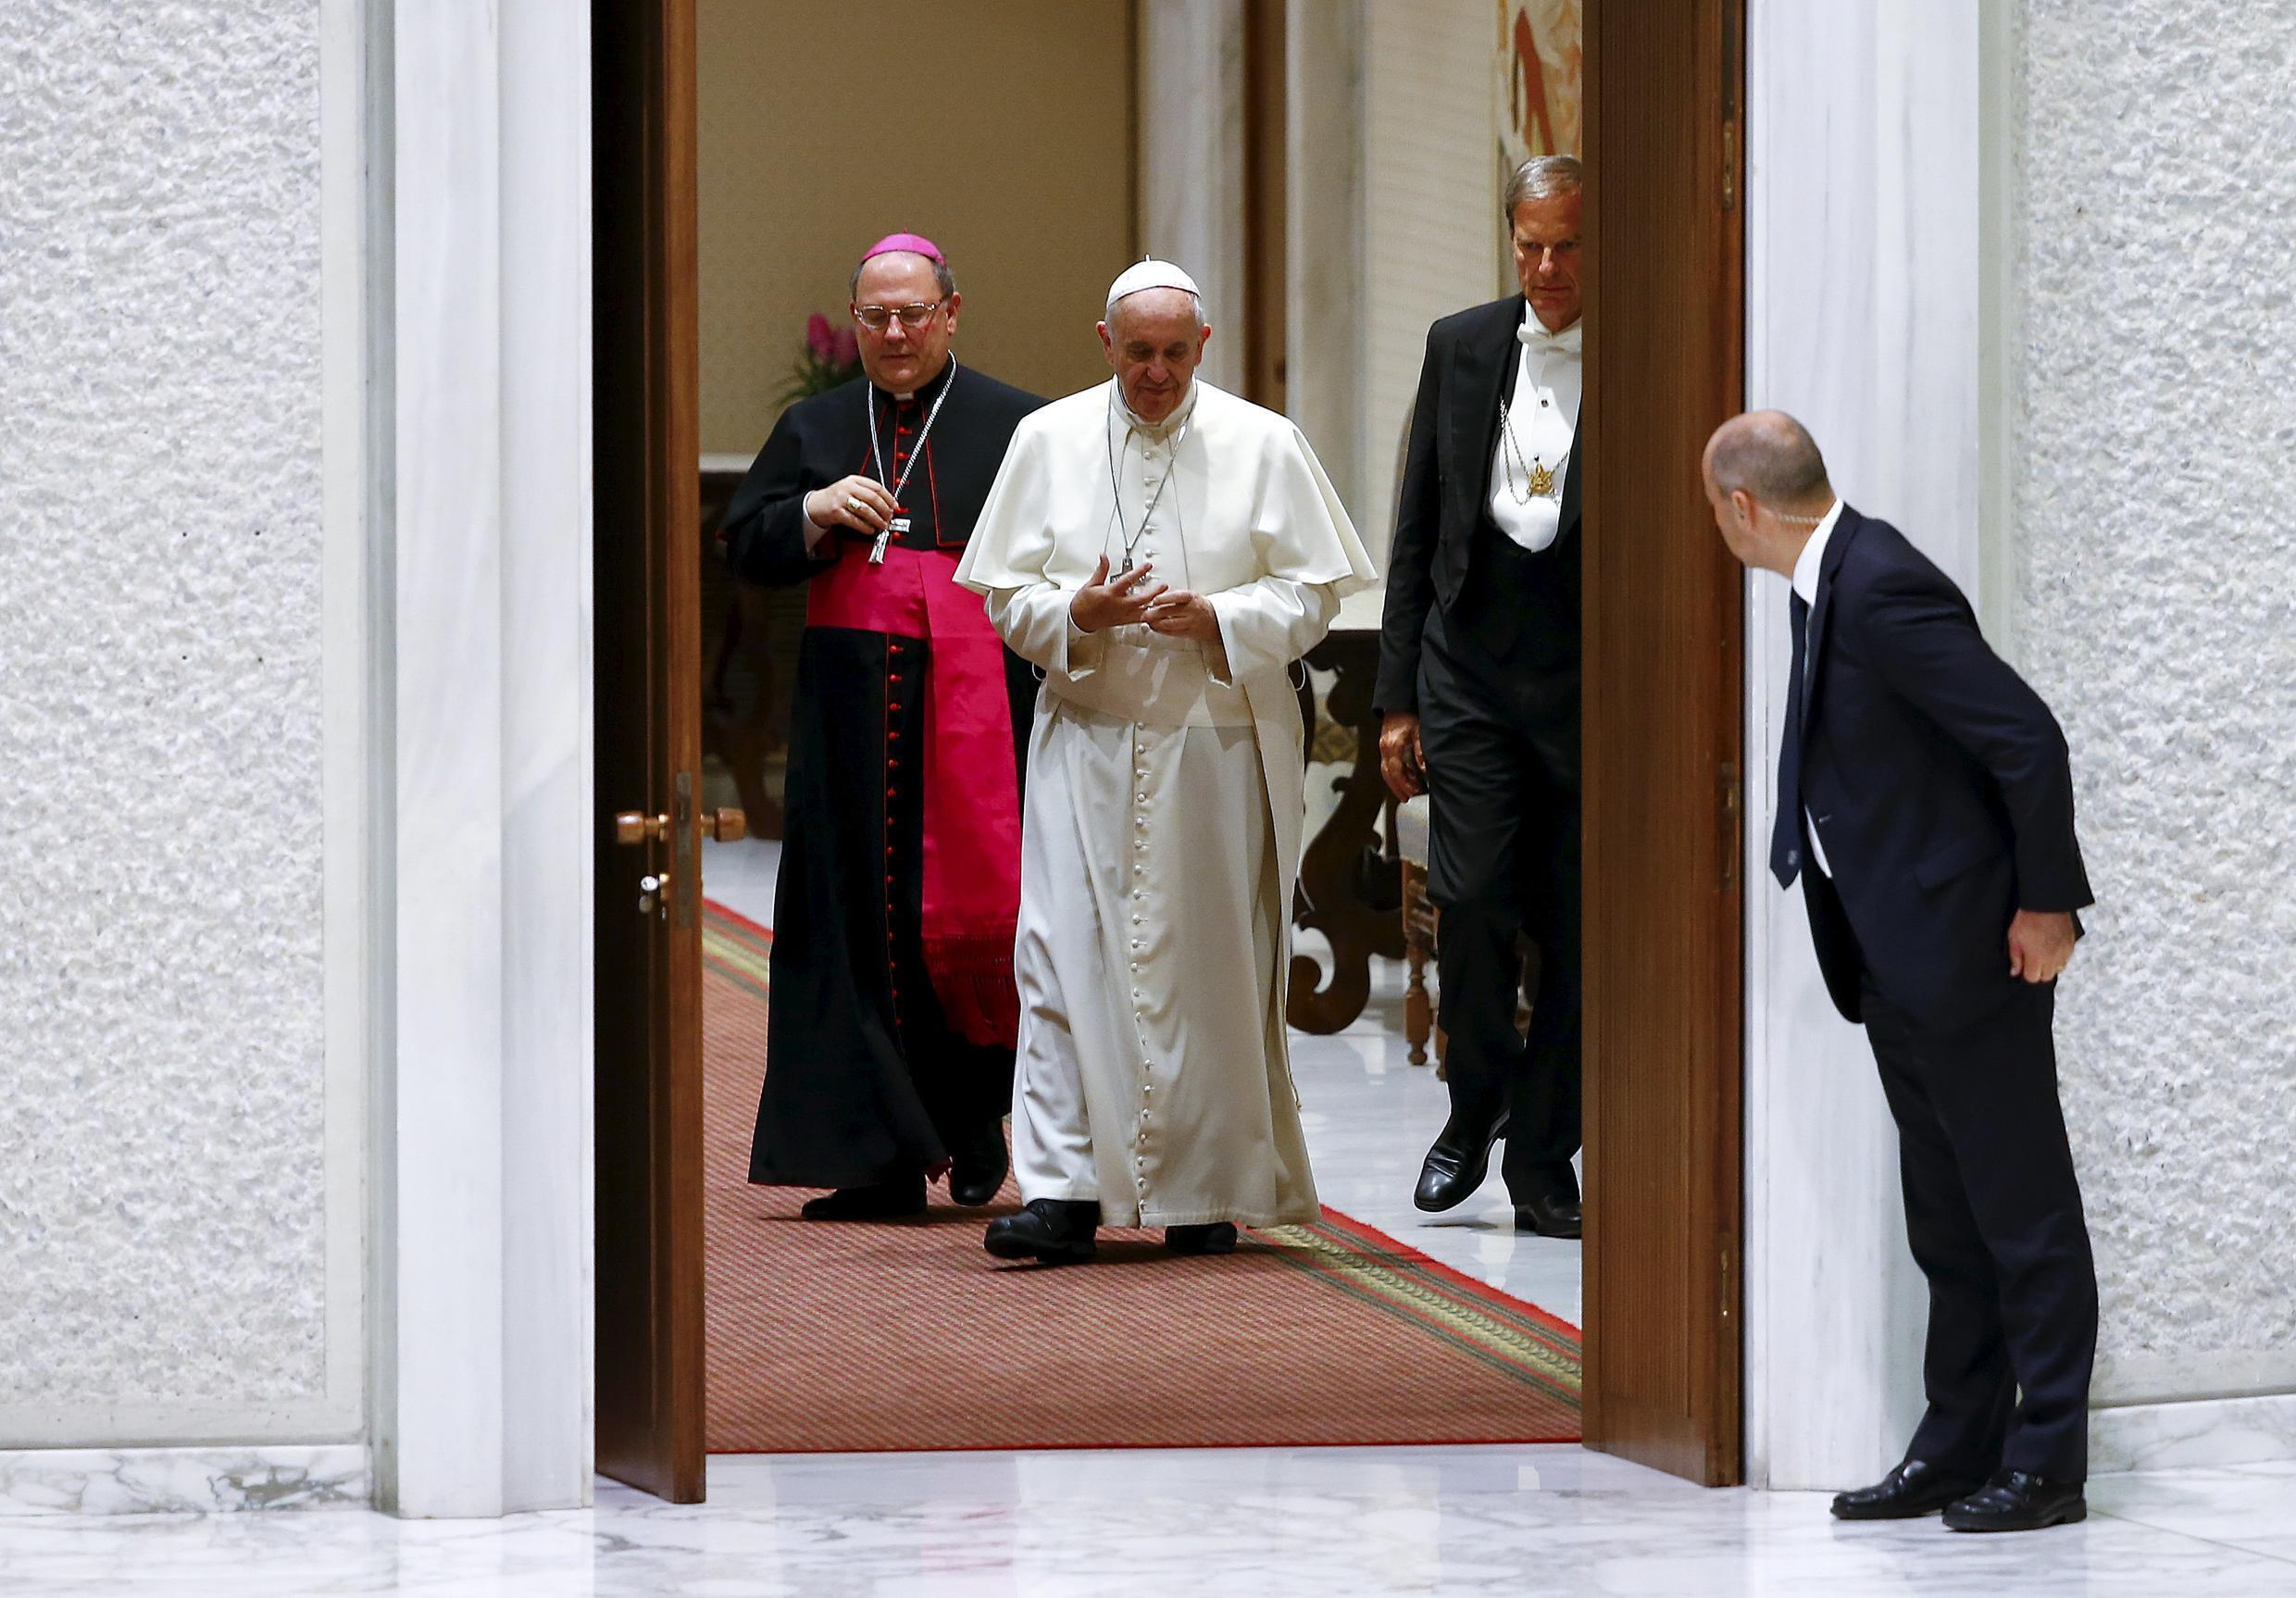 Pope Francis arrives to lead a special audience to mark the 50th anniversary of Synod of Bishops at the Vatican